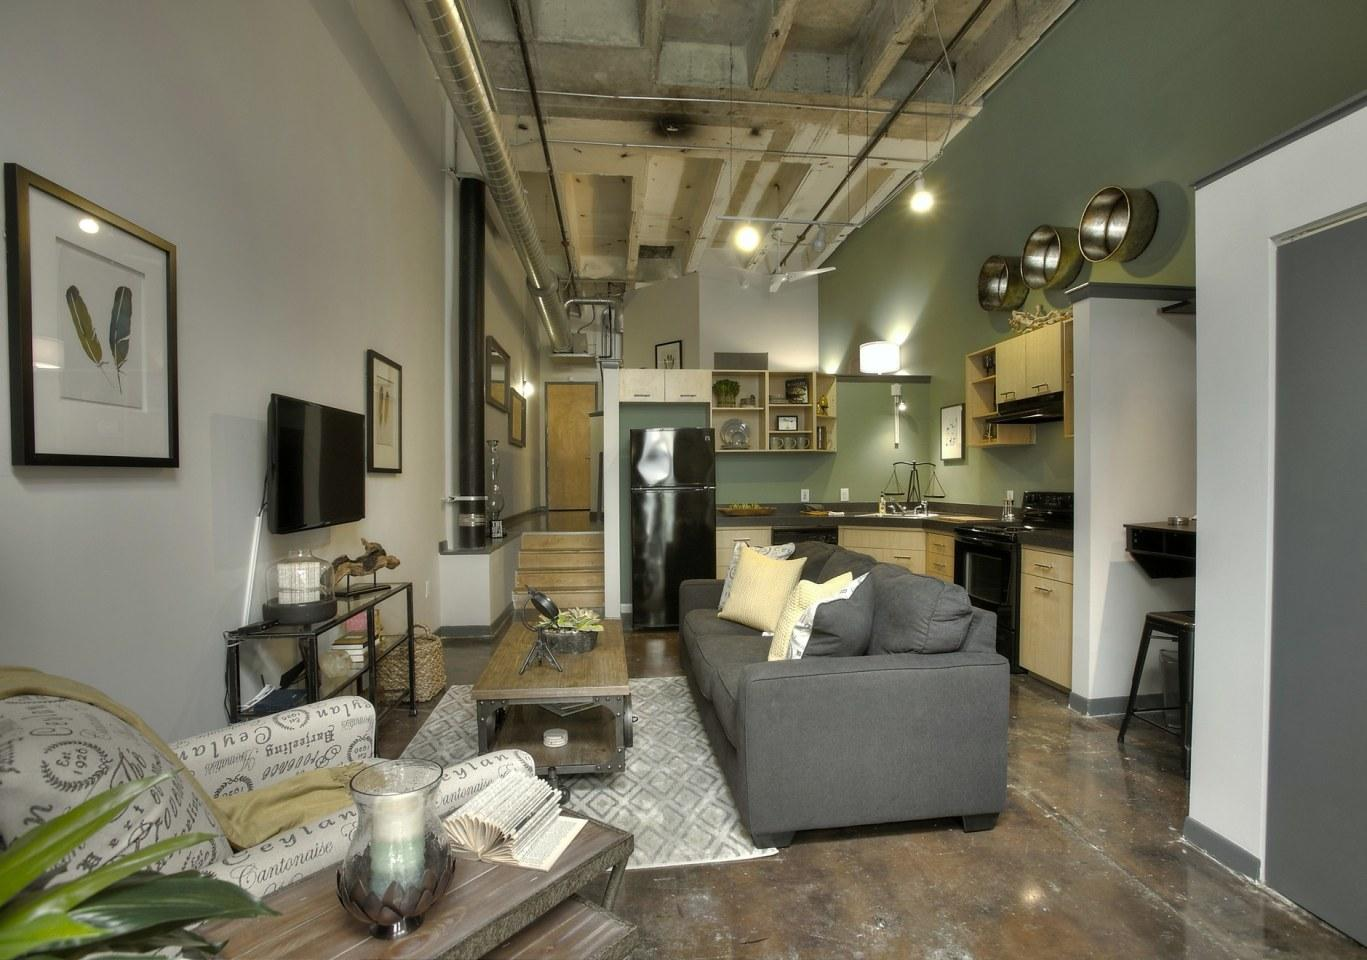 The Lofts of Winter Park Village Apartments photo #1